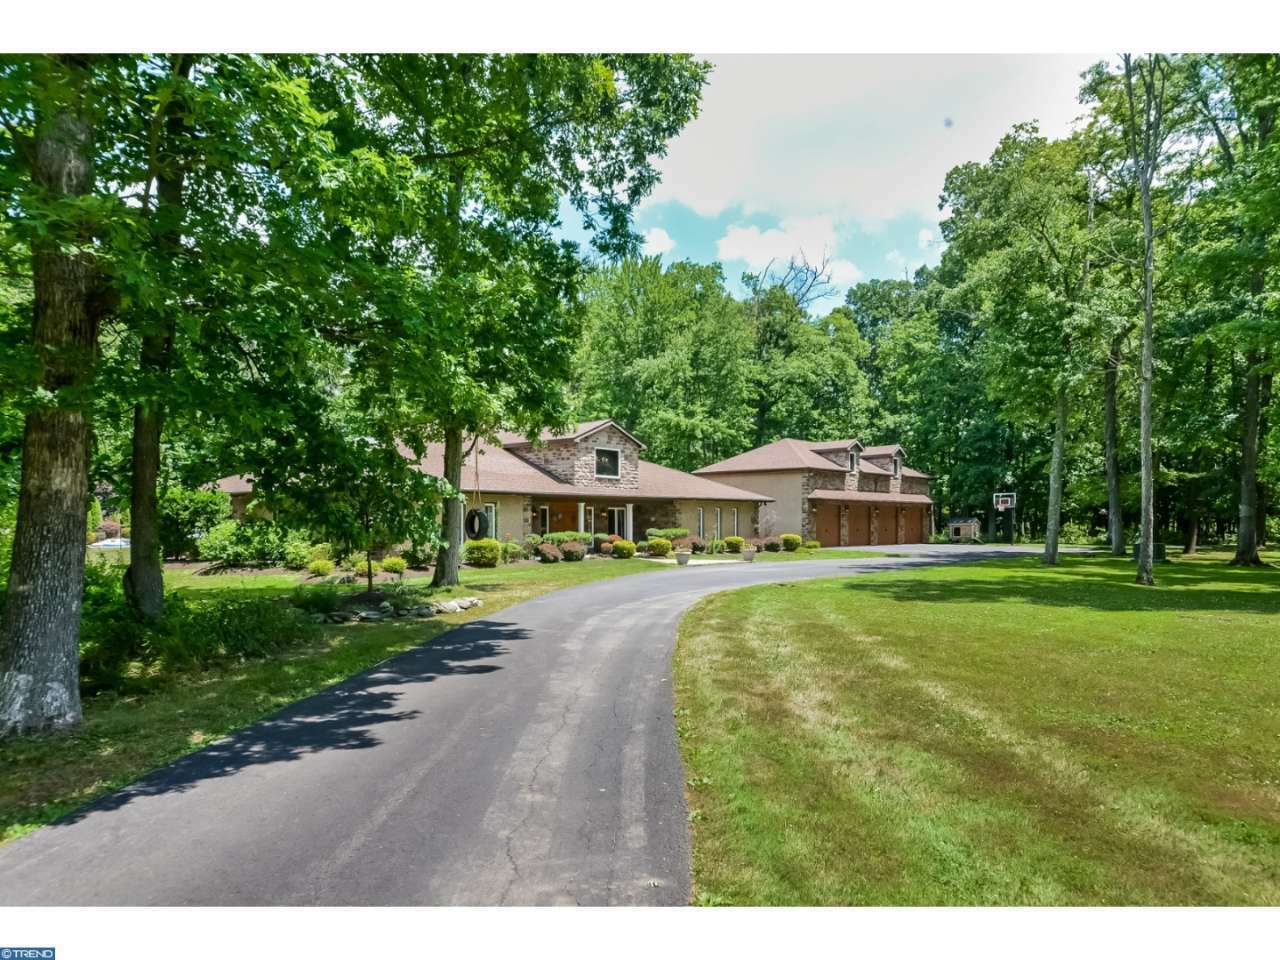 5931 Wismer Rd, Pipersville, PA - USA (photo 2)